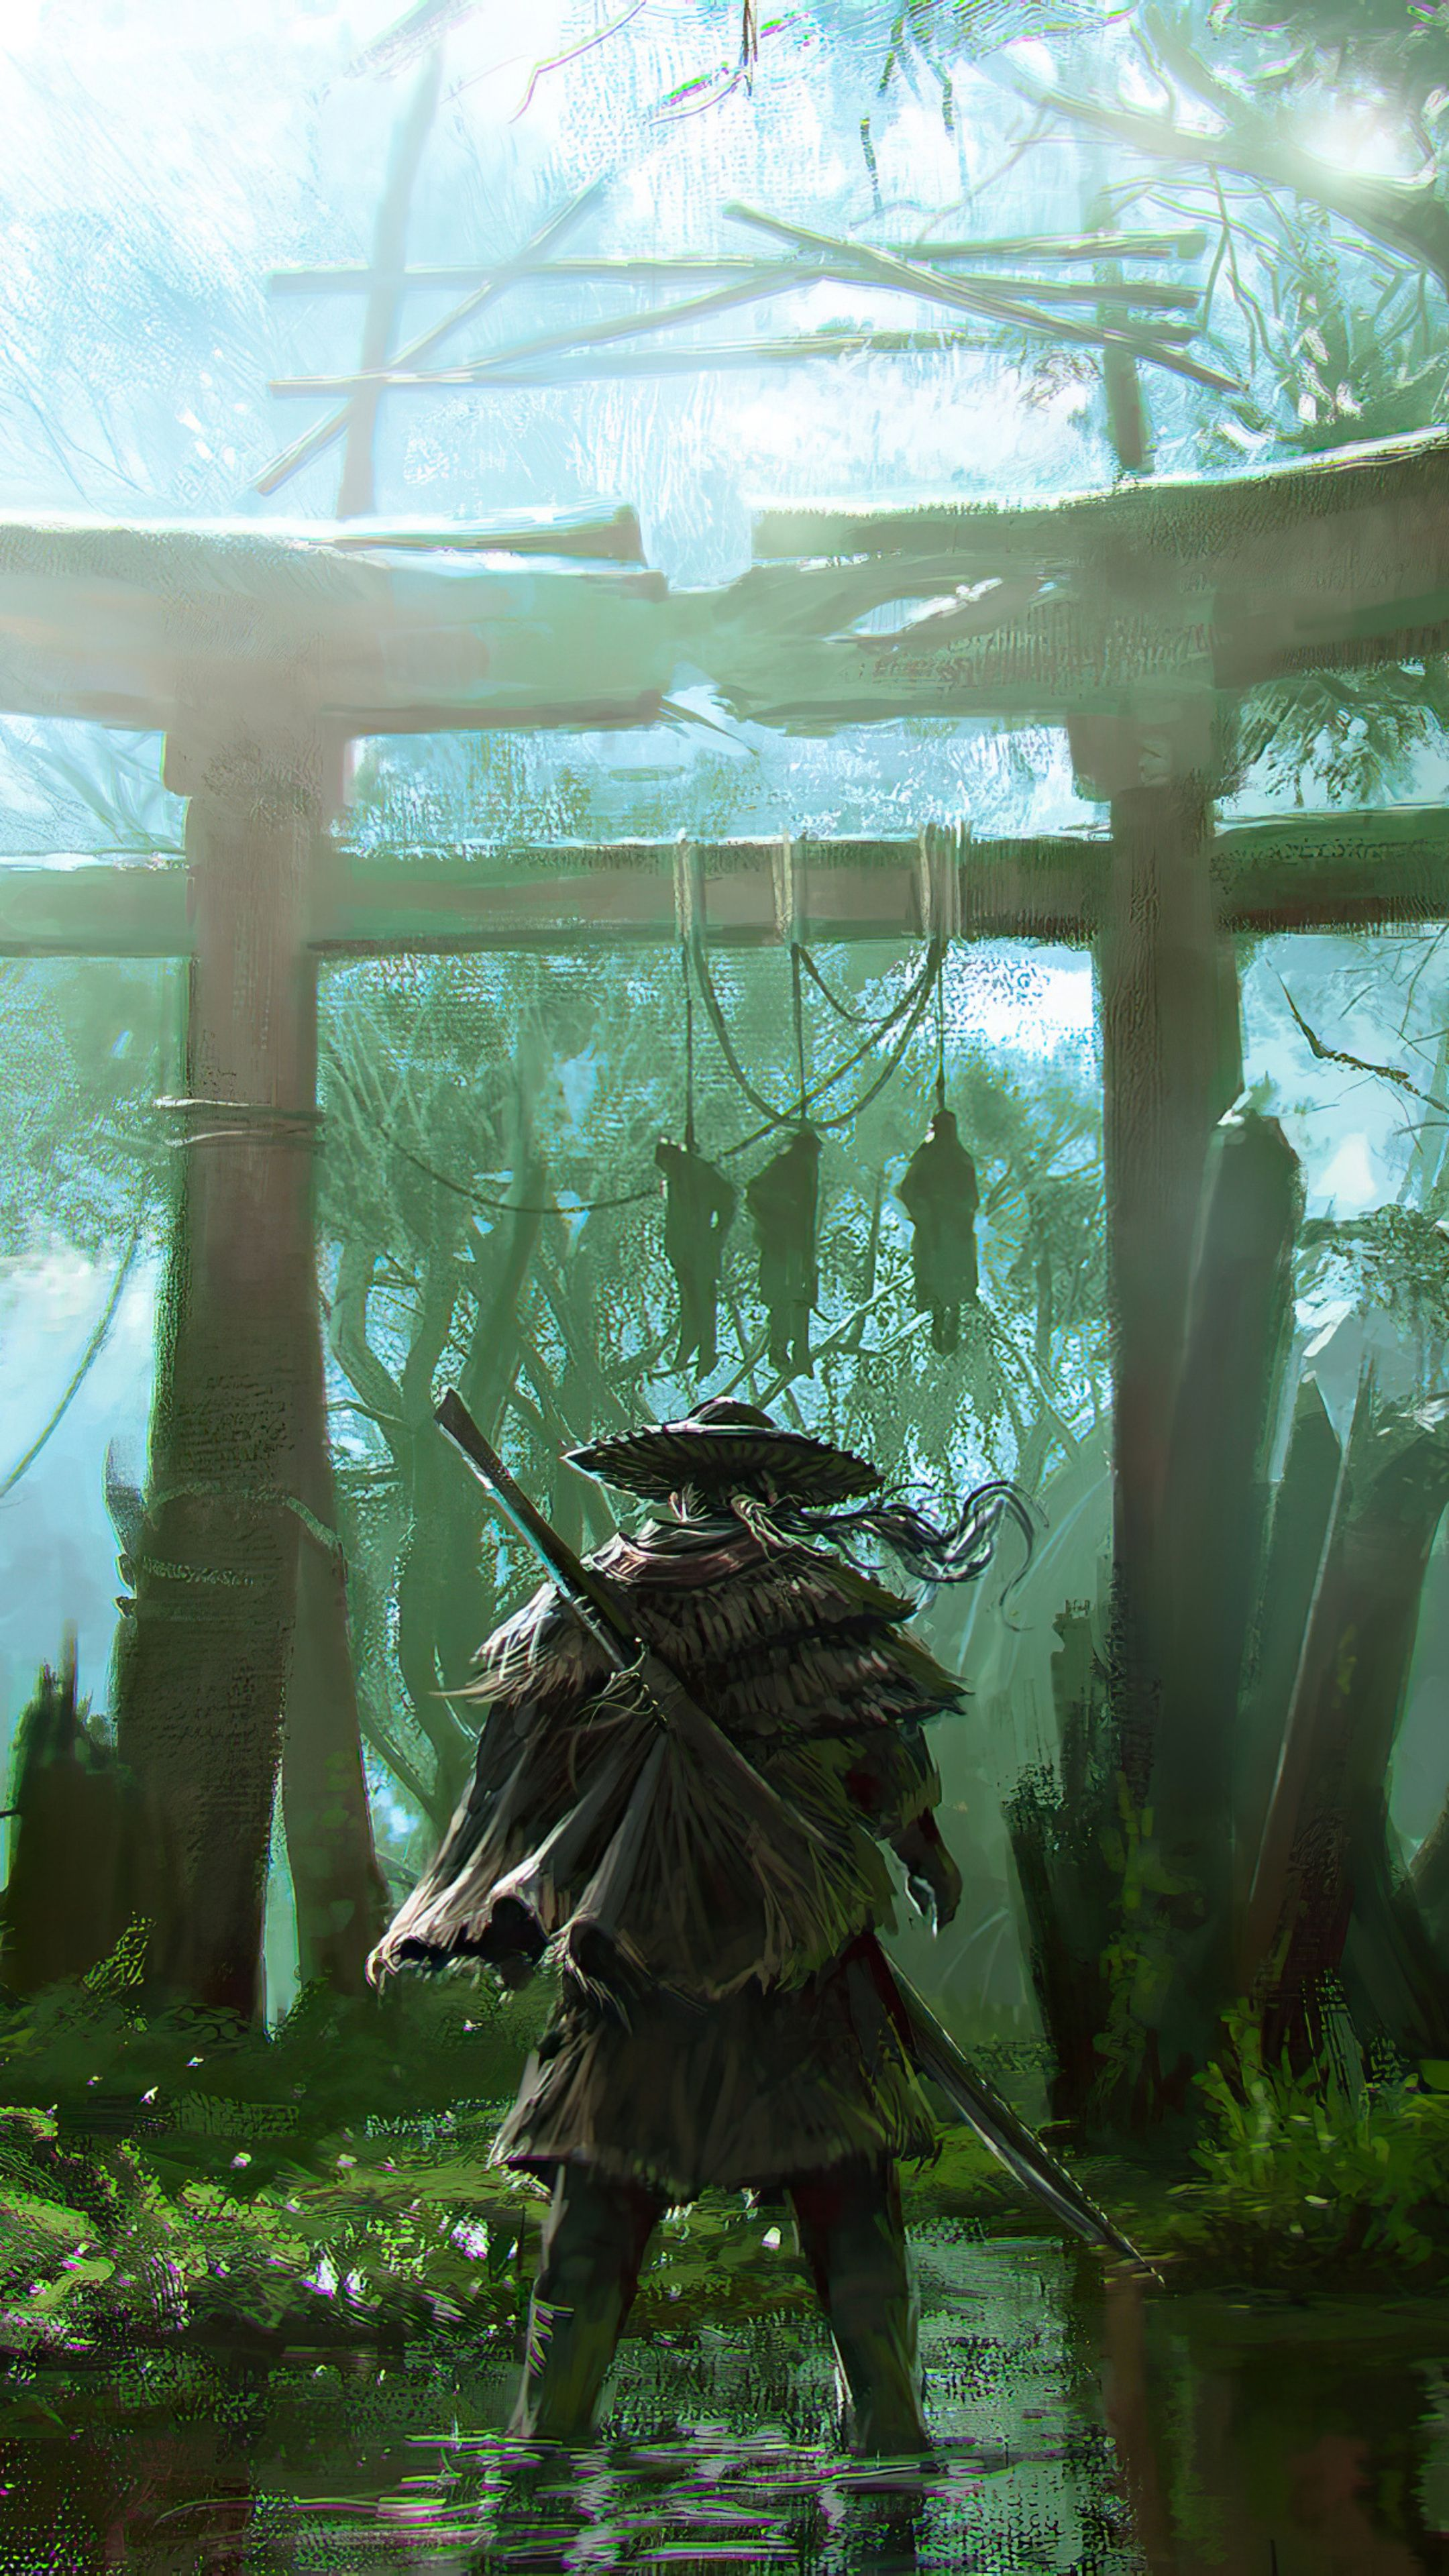 Ghost Of Tsushima Game Mobile Hd Wallpaper In 2020 Samurai Wallpaper Ghost Of Tsushima Samurai Artwork